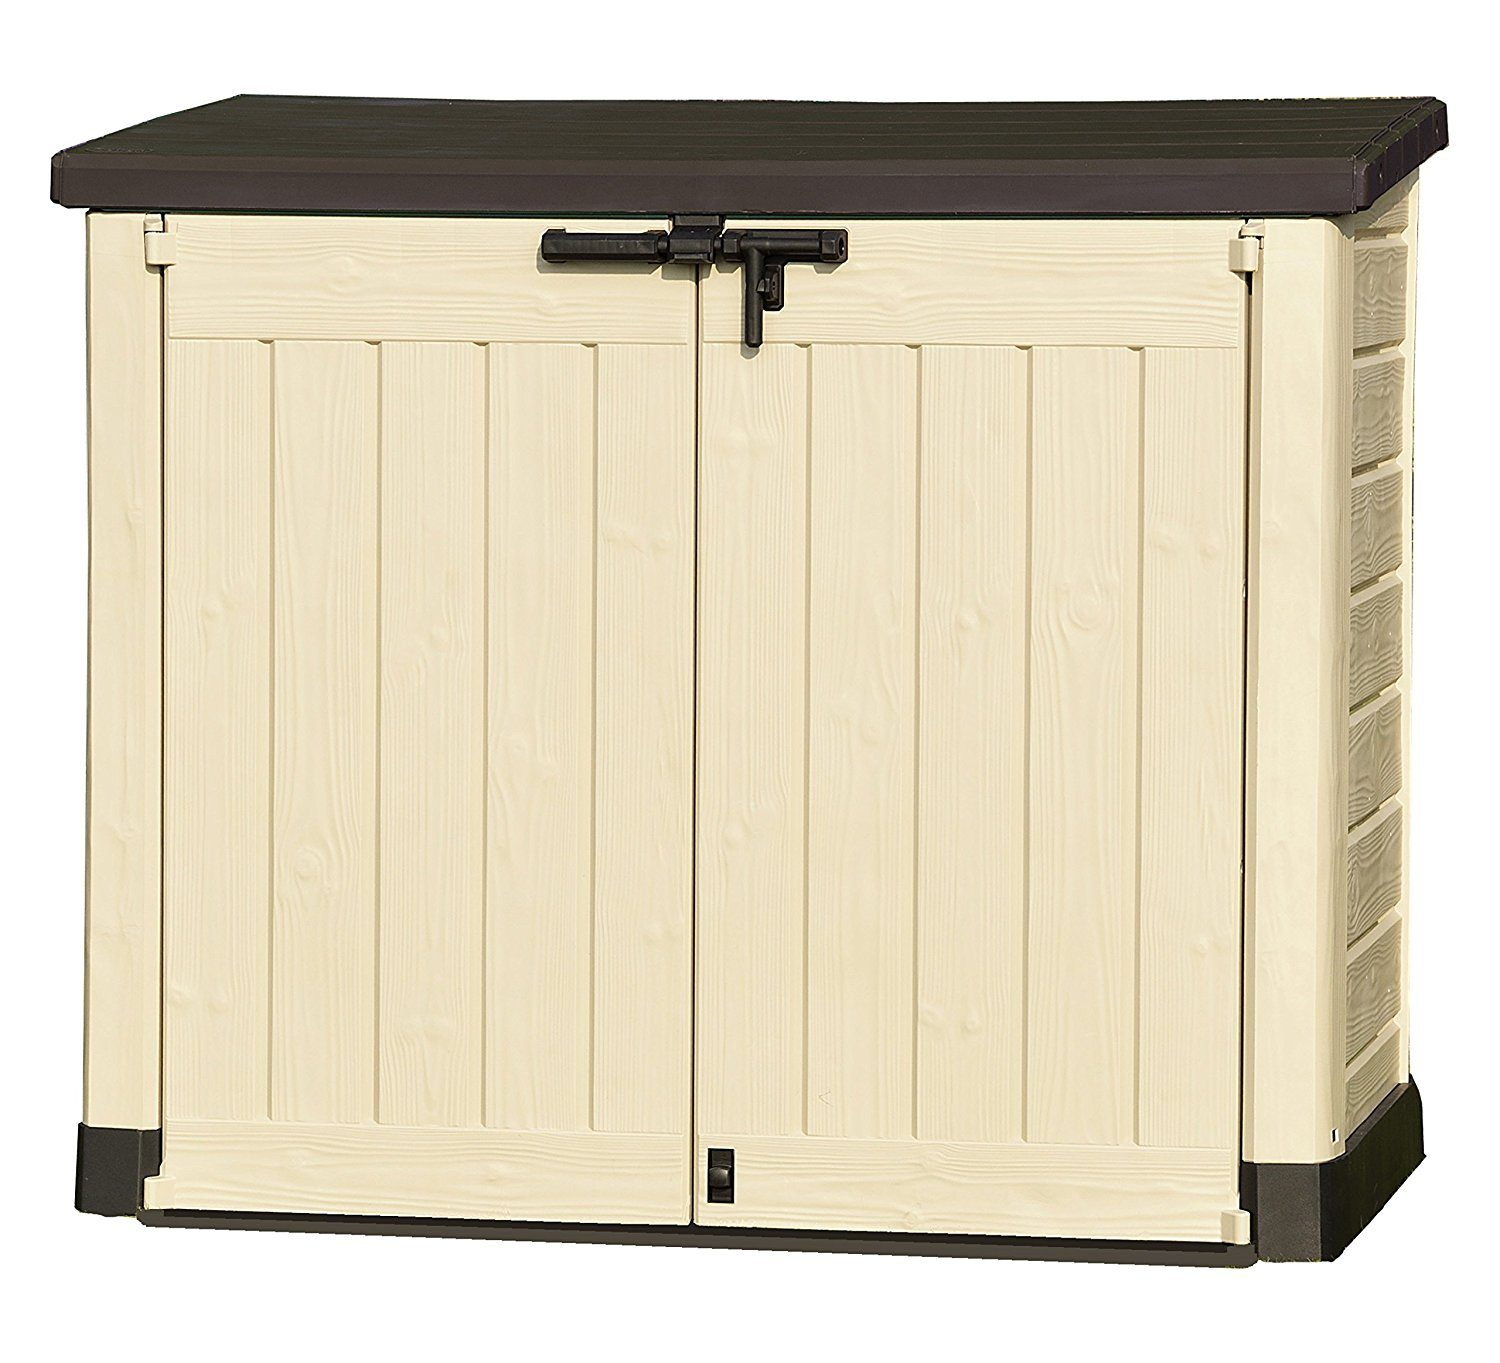 keter store it out max outdoor plastic garden storage shed uk review. Black Bedroom Furniture Sets. Home Design Ideas